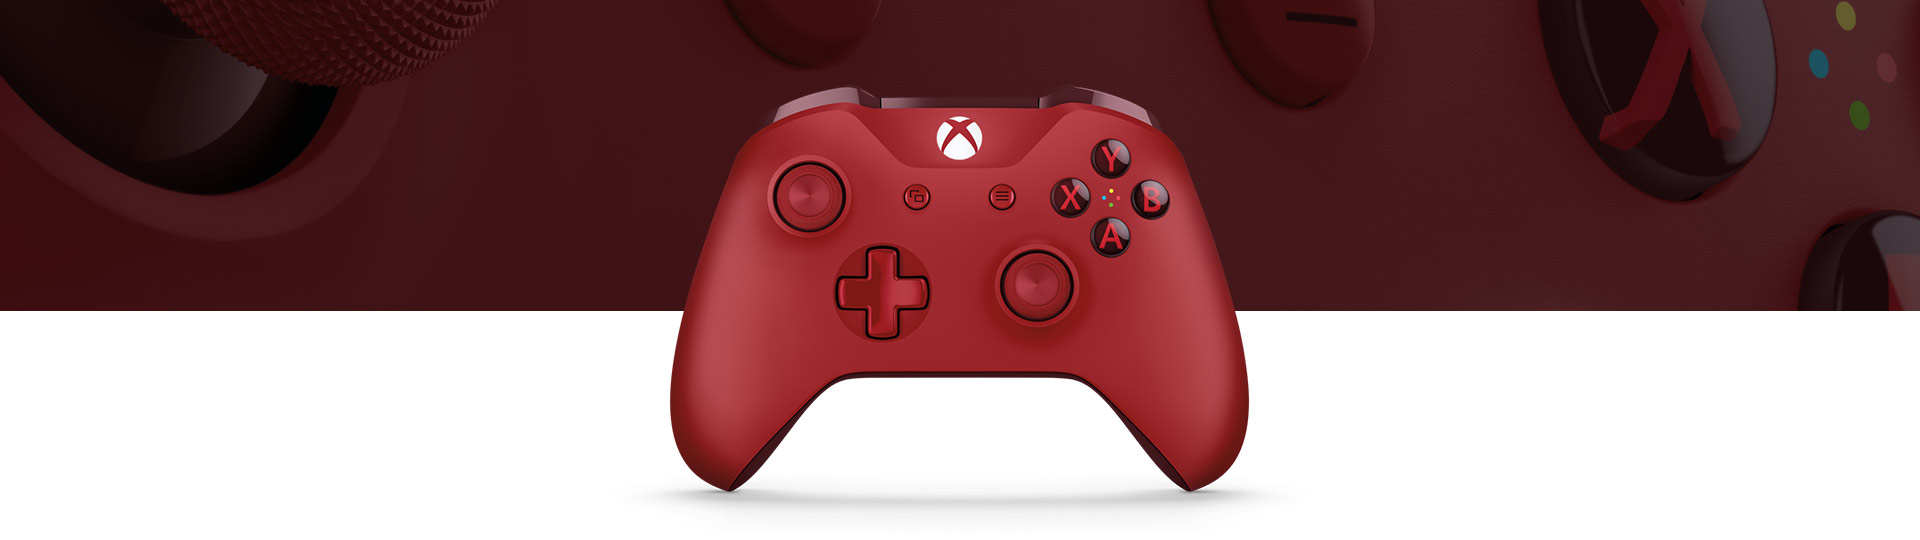 Manette sans fil Xbox One - Rouge